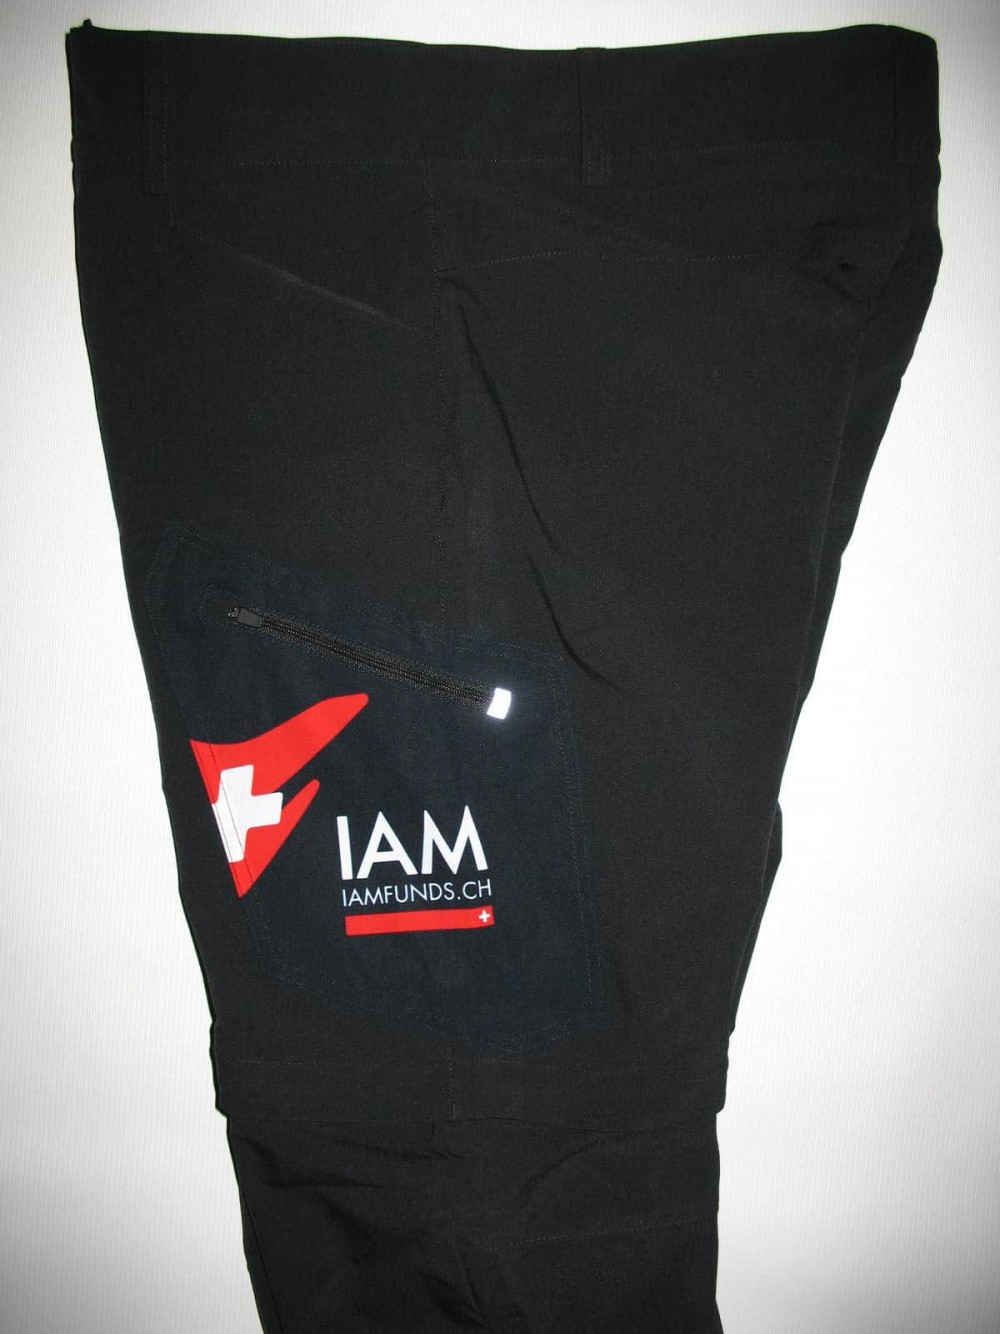 Штаны CUORE iamfunds 2in1 cycling pants (размер S) - 5